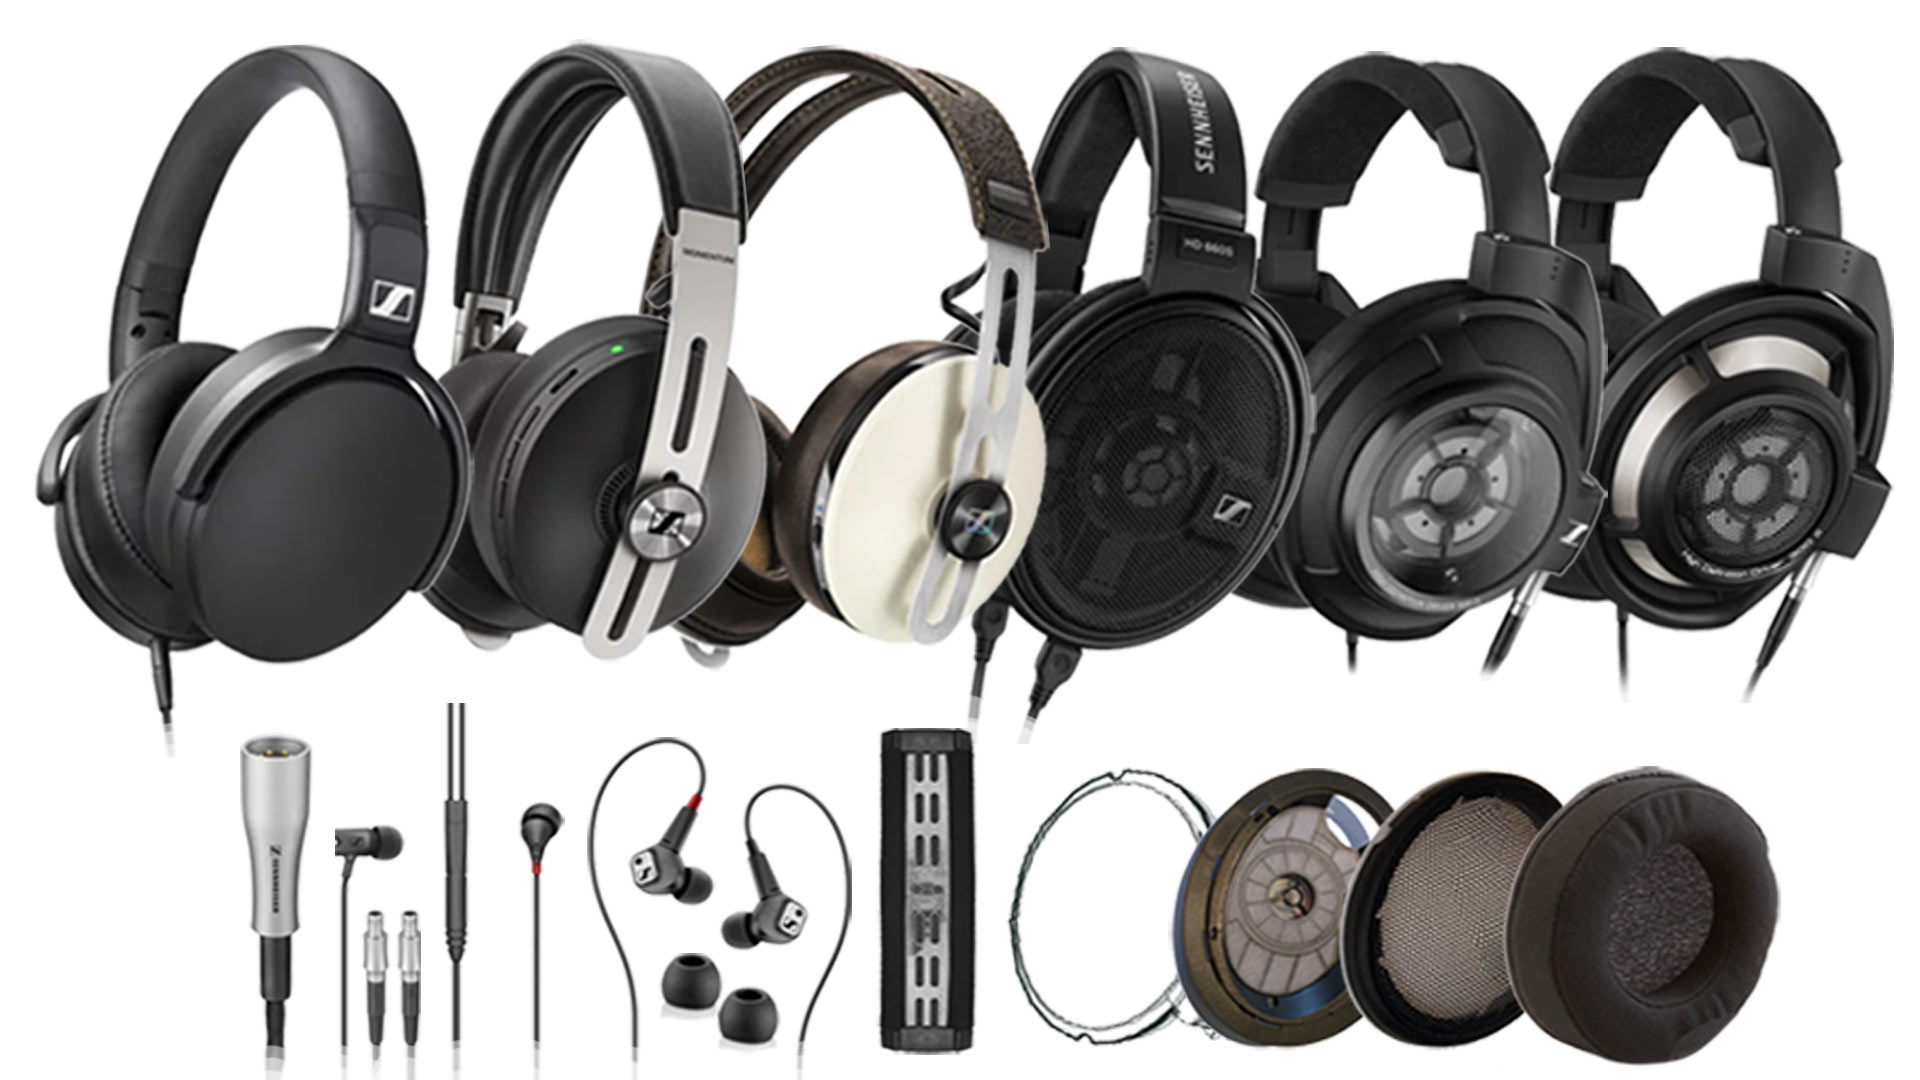 Full Sennheiser Range Available | Unilet Sound & Vision